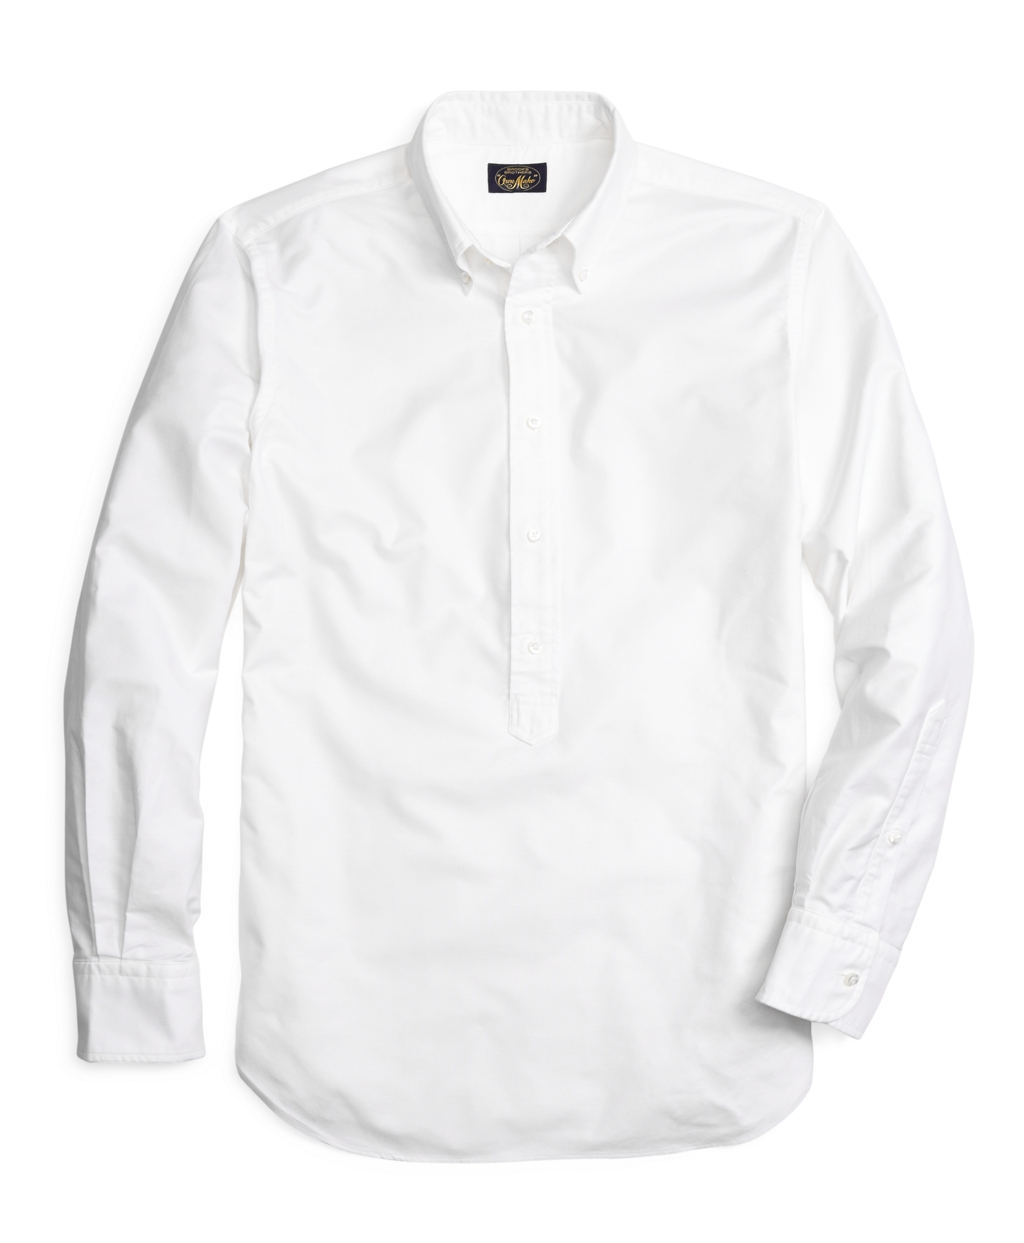 Lyst brooks brothers own make white oxford sport shirt for Brooks brothers sports shirts